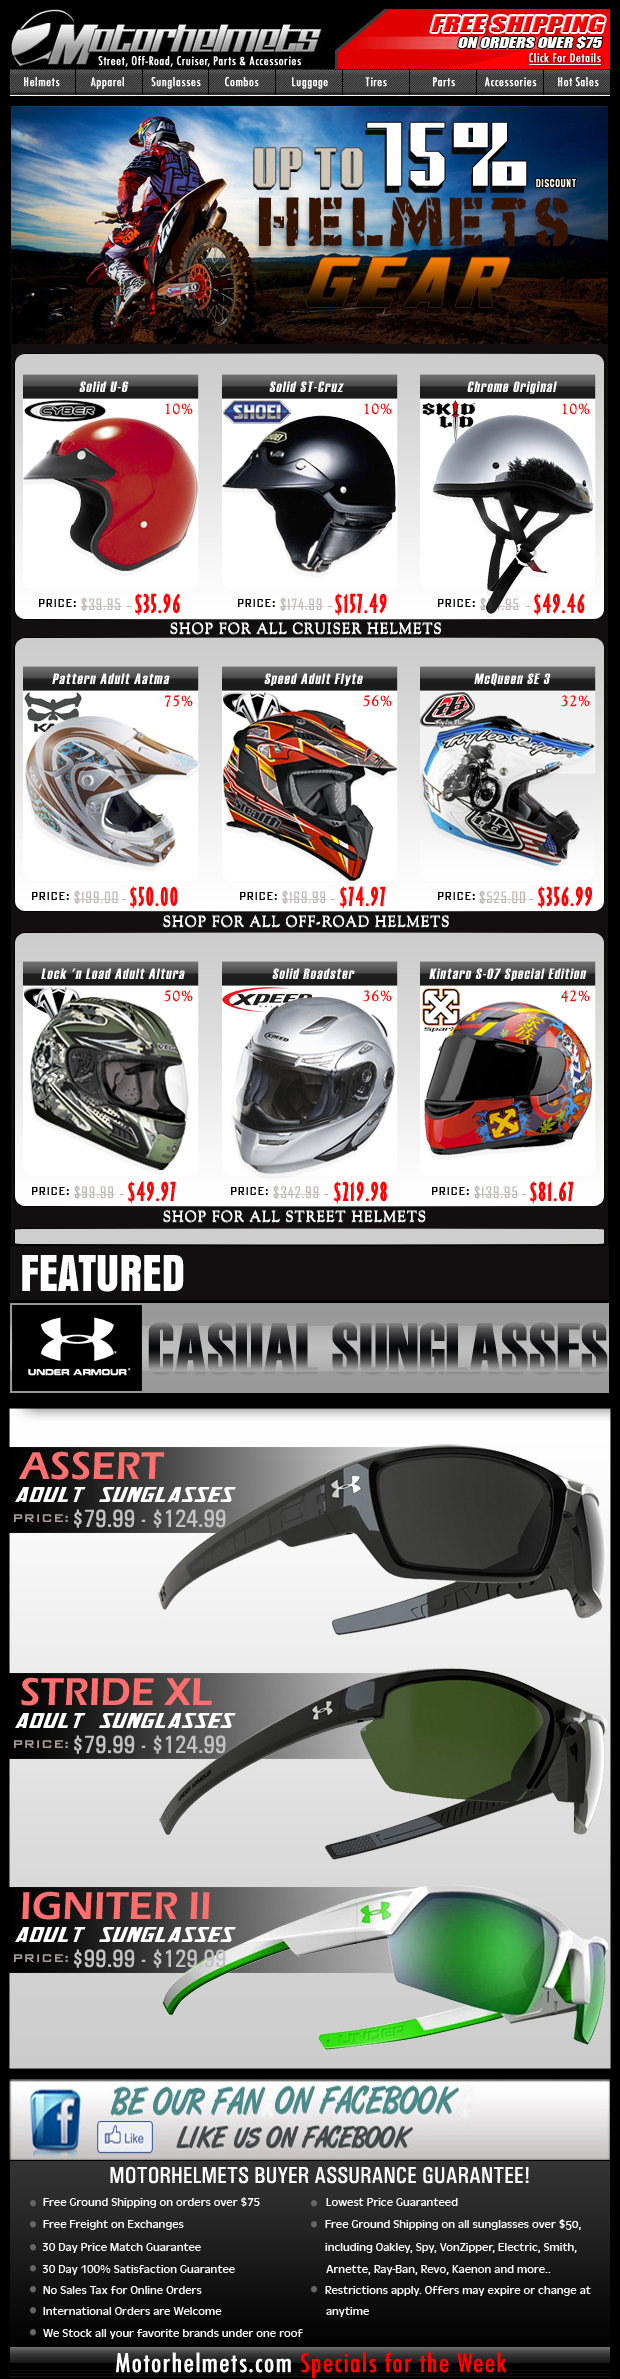 Helmet Specials...Save up to 75% Off on Closeouts from Shoei, TLD and more!